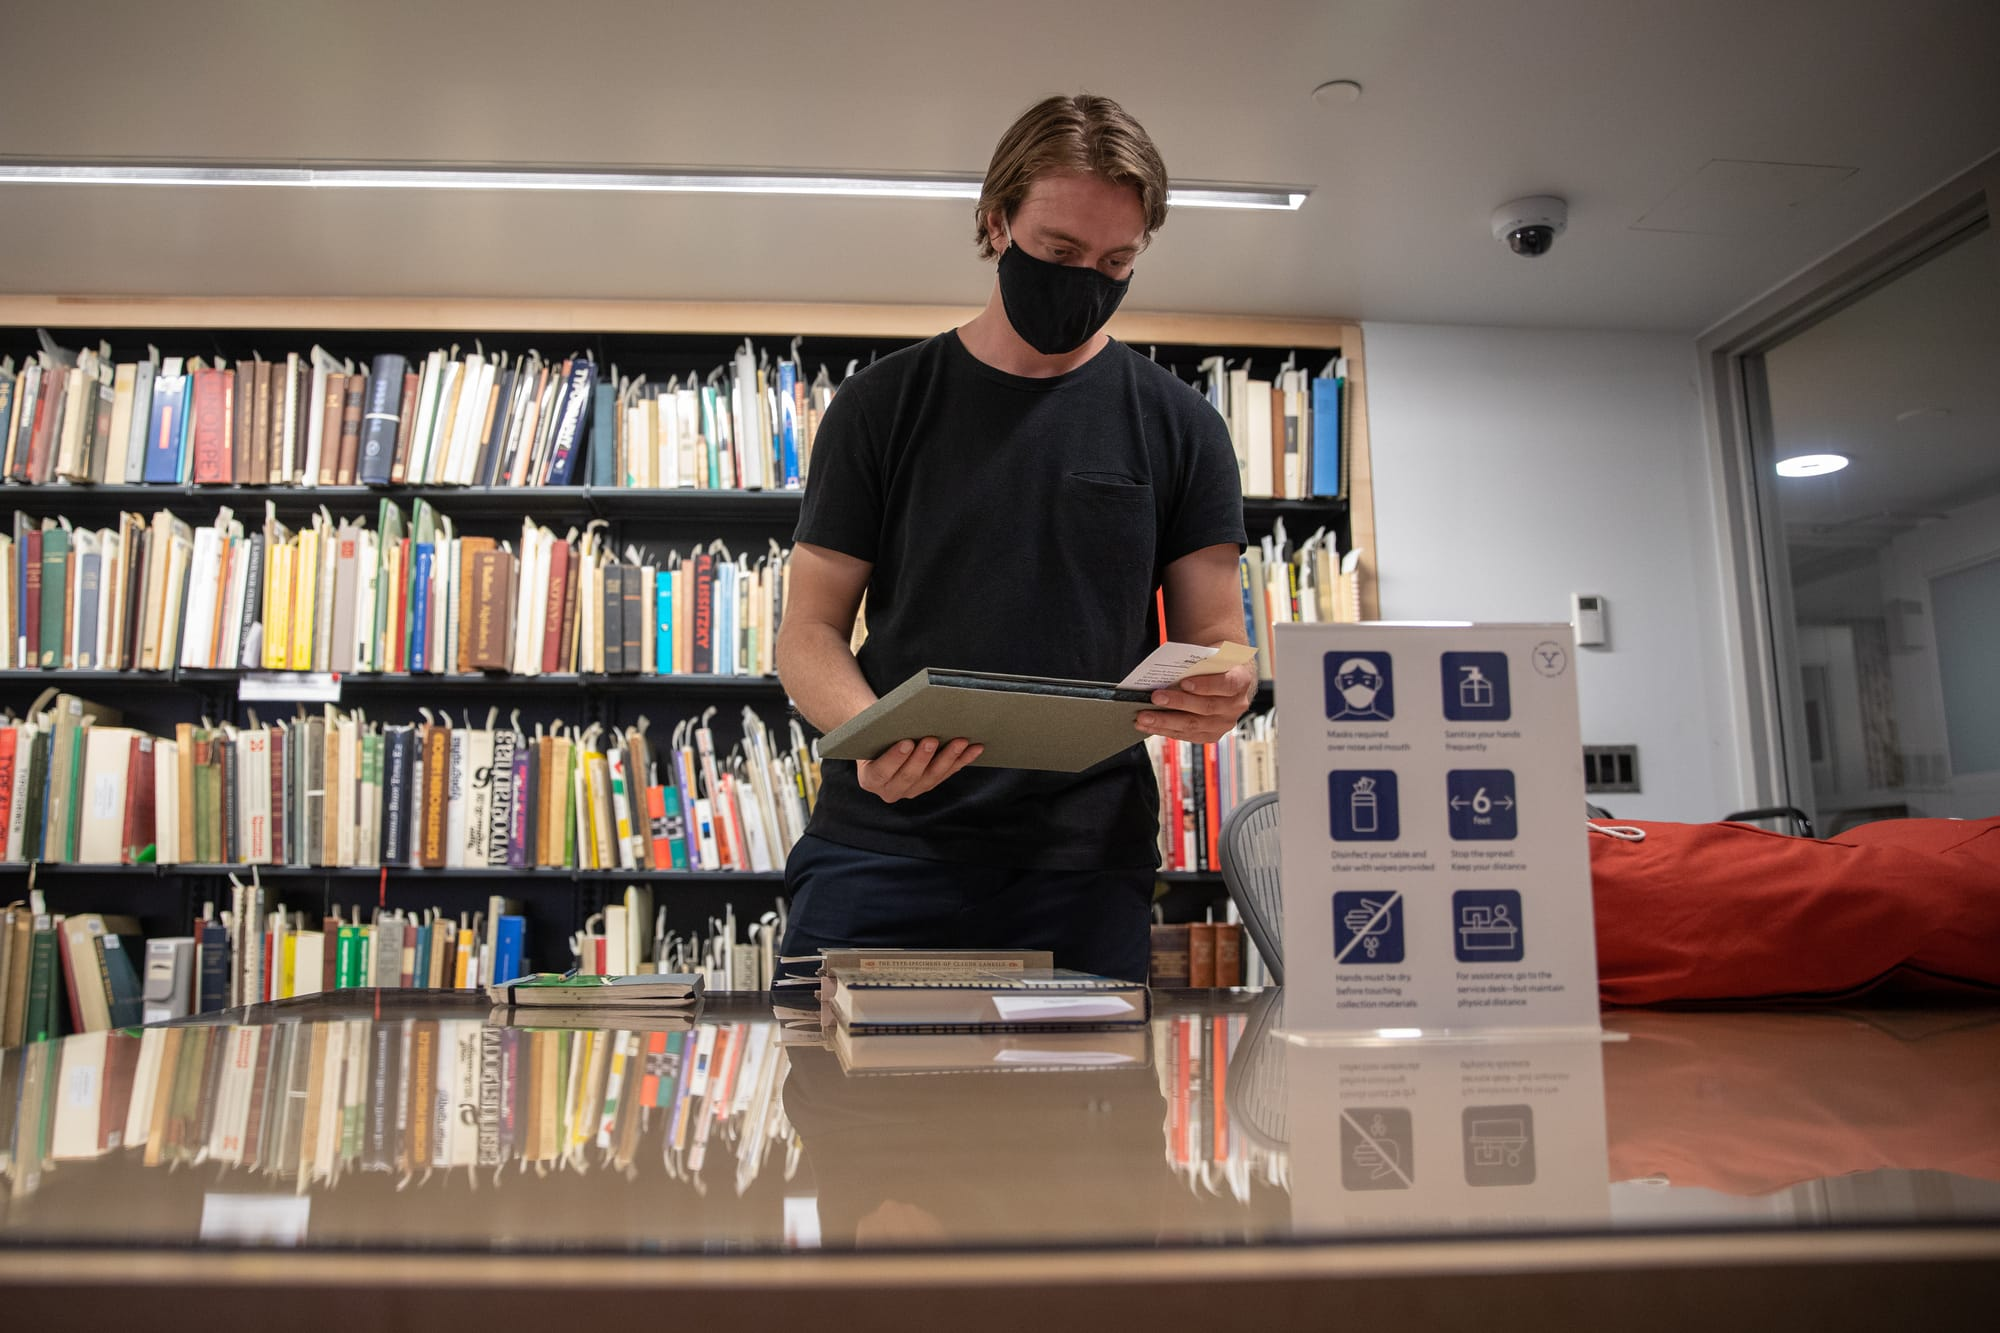 A masked student stands in front of book shelves and behind a table stacked with library books.